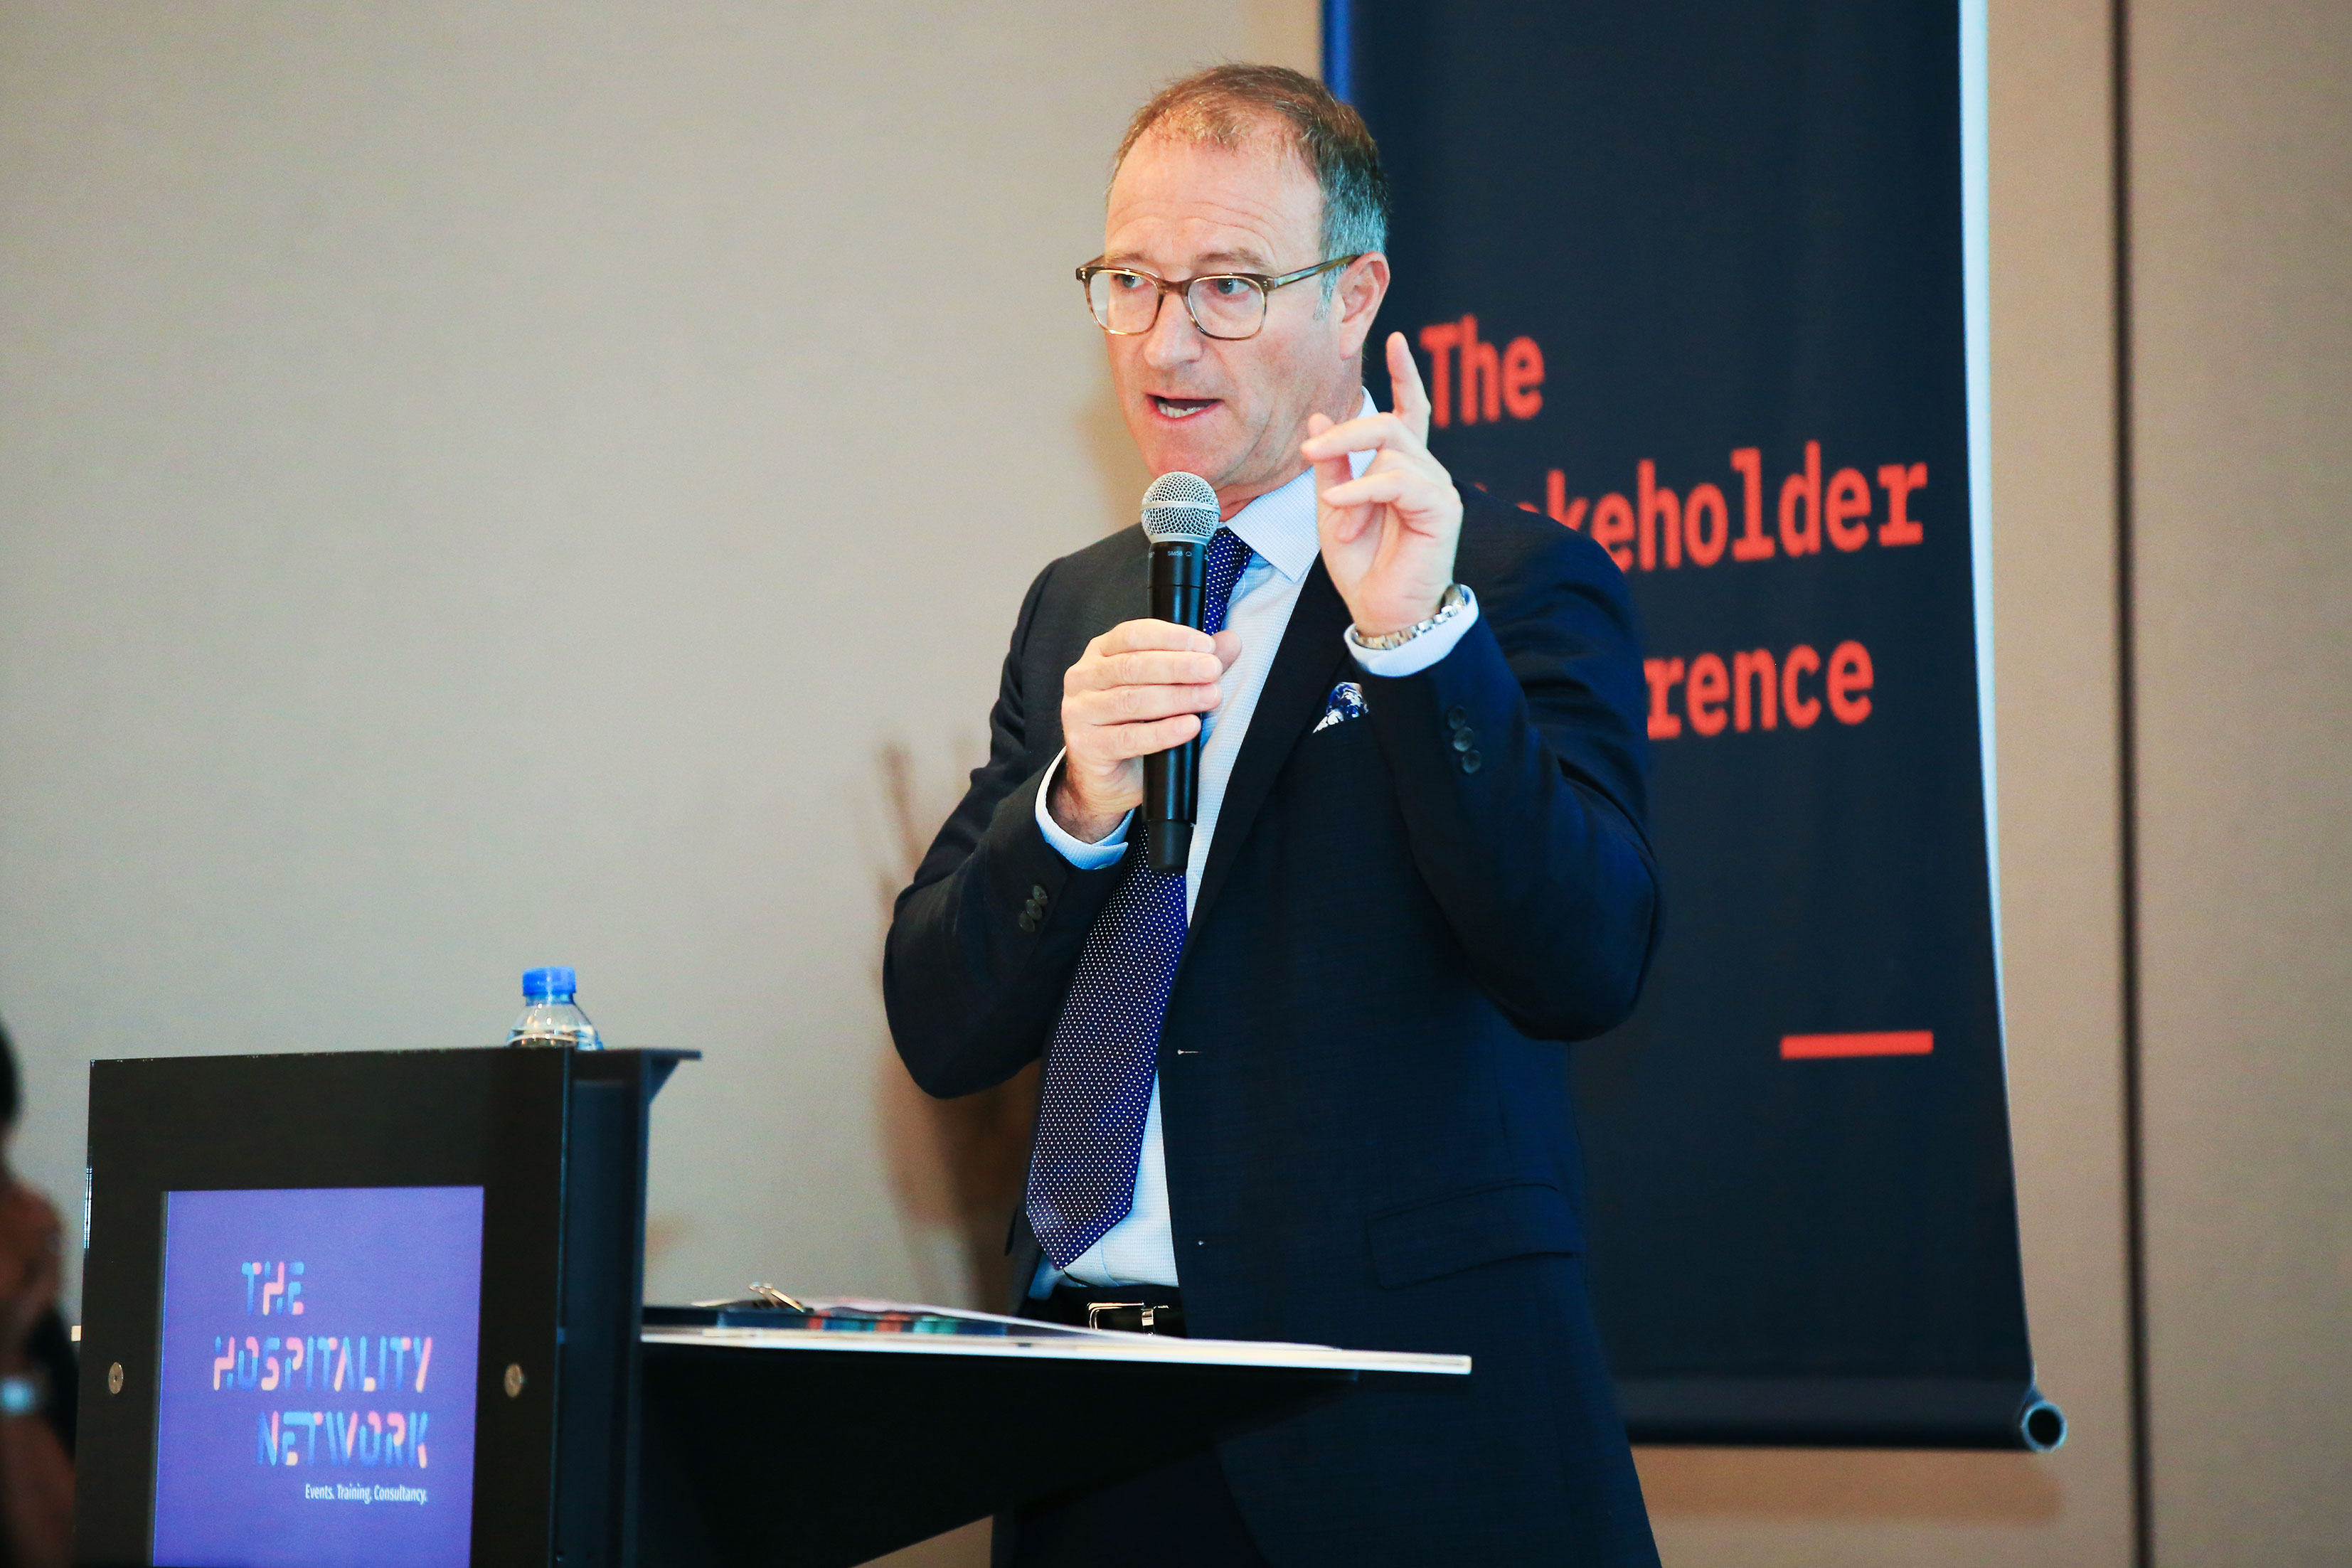 Speakers - The Stakeholder Conference